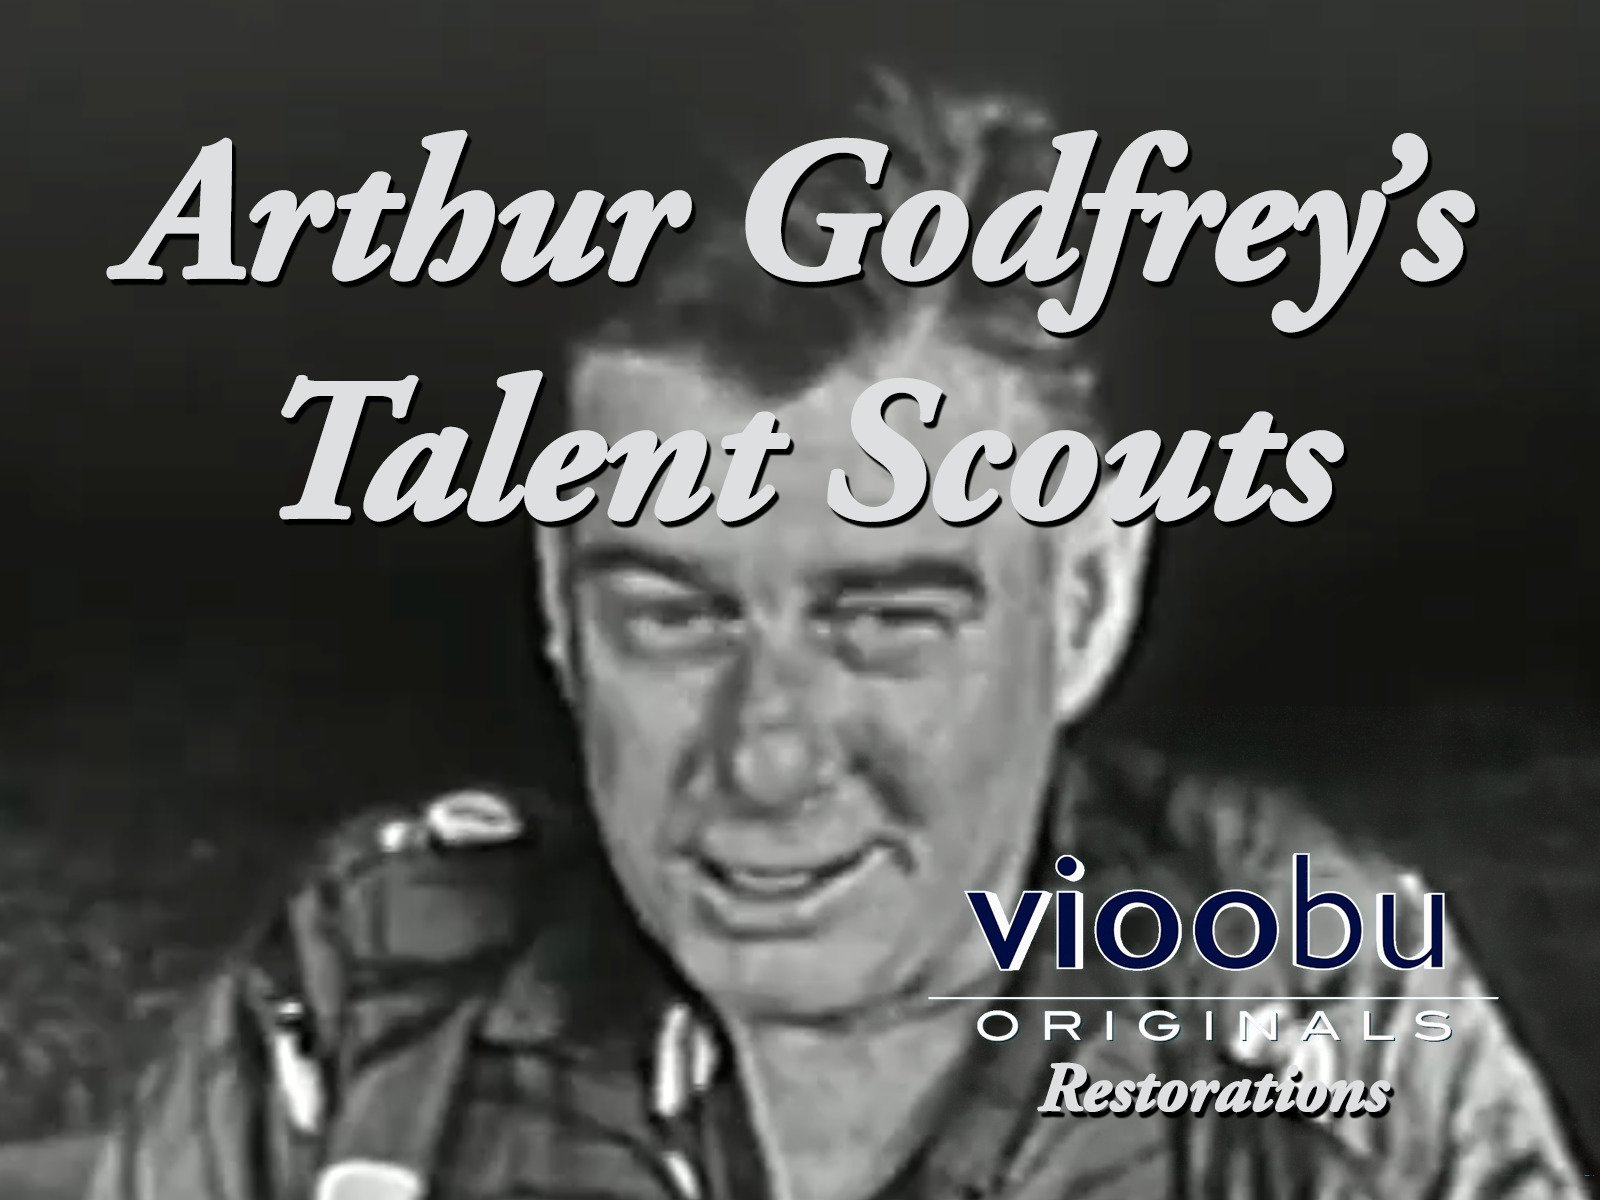 Arthur Godfrey's Talent Scouts